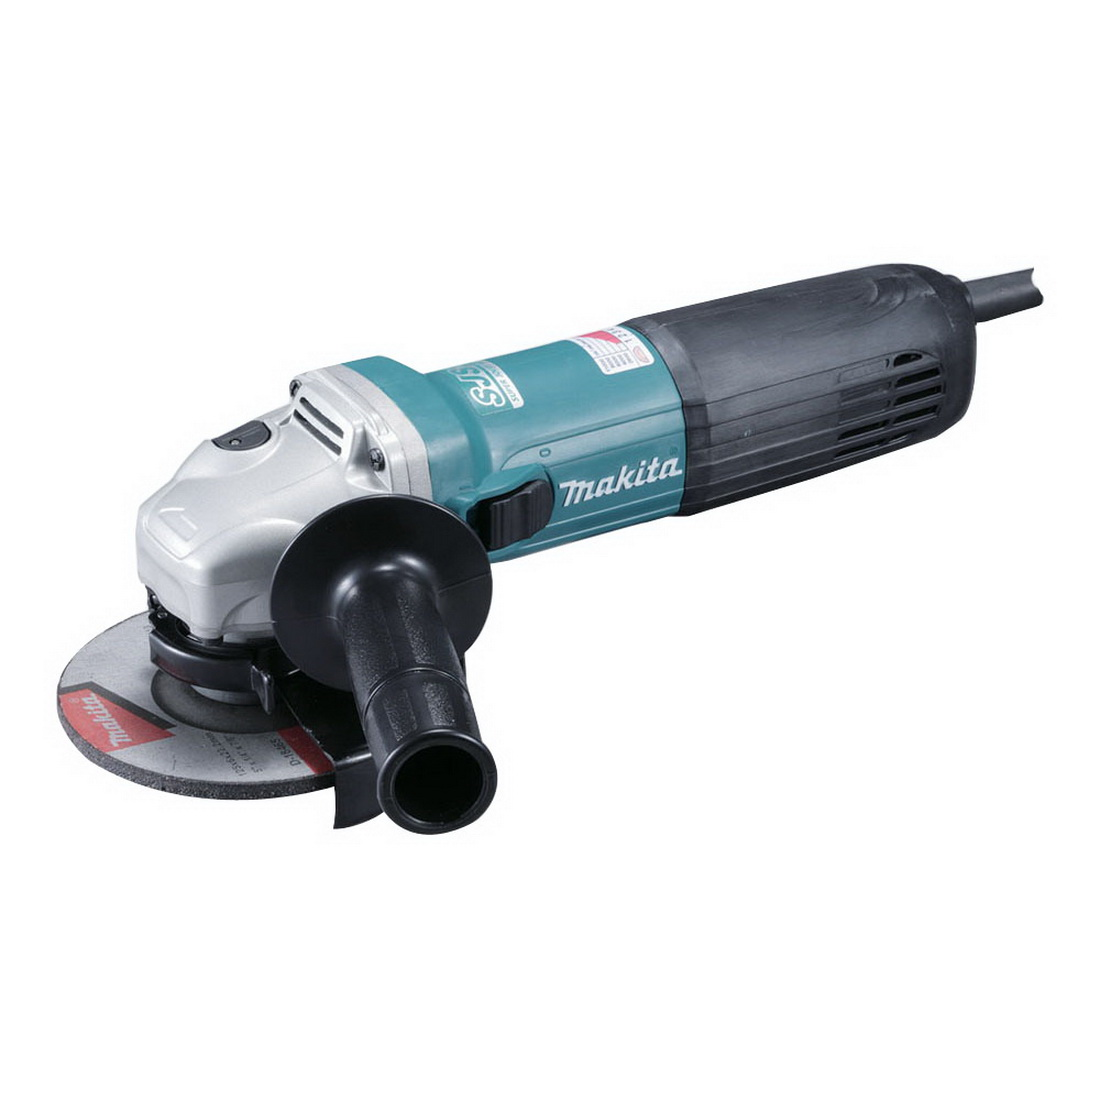 1400W 125mm Variable Speed Angle Grinder